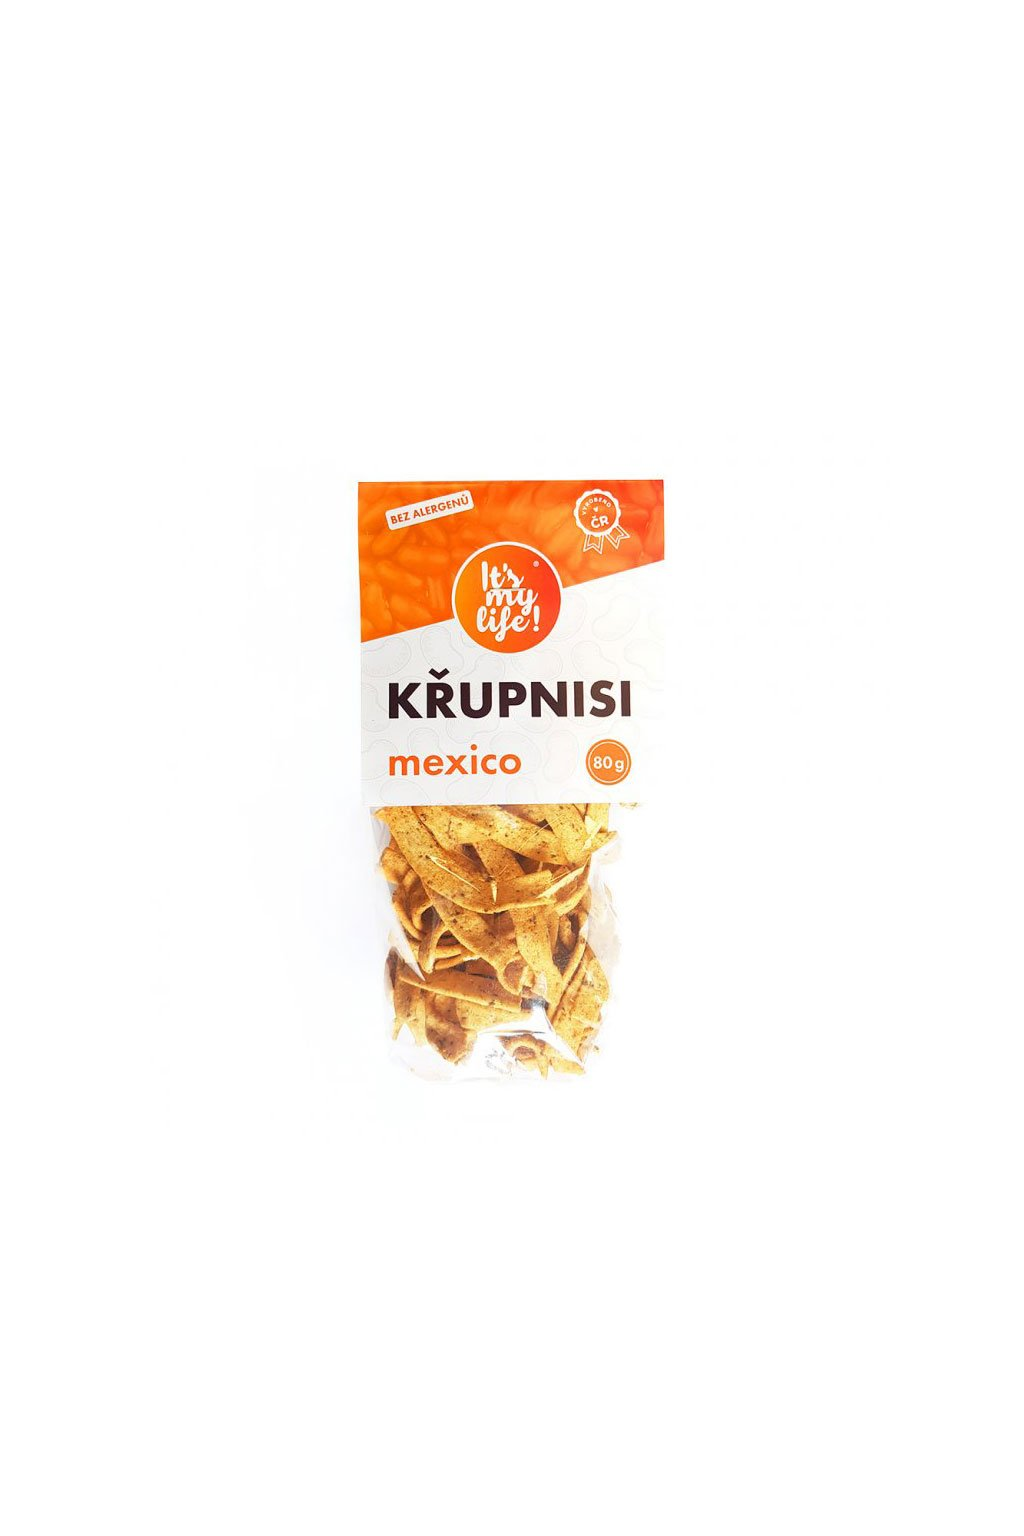 It's my life! Chipsy křupnisi mexico 80g